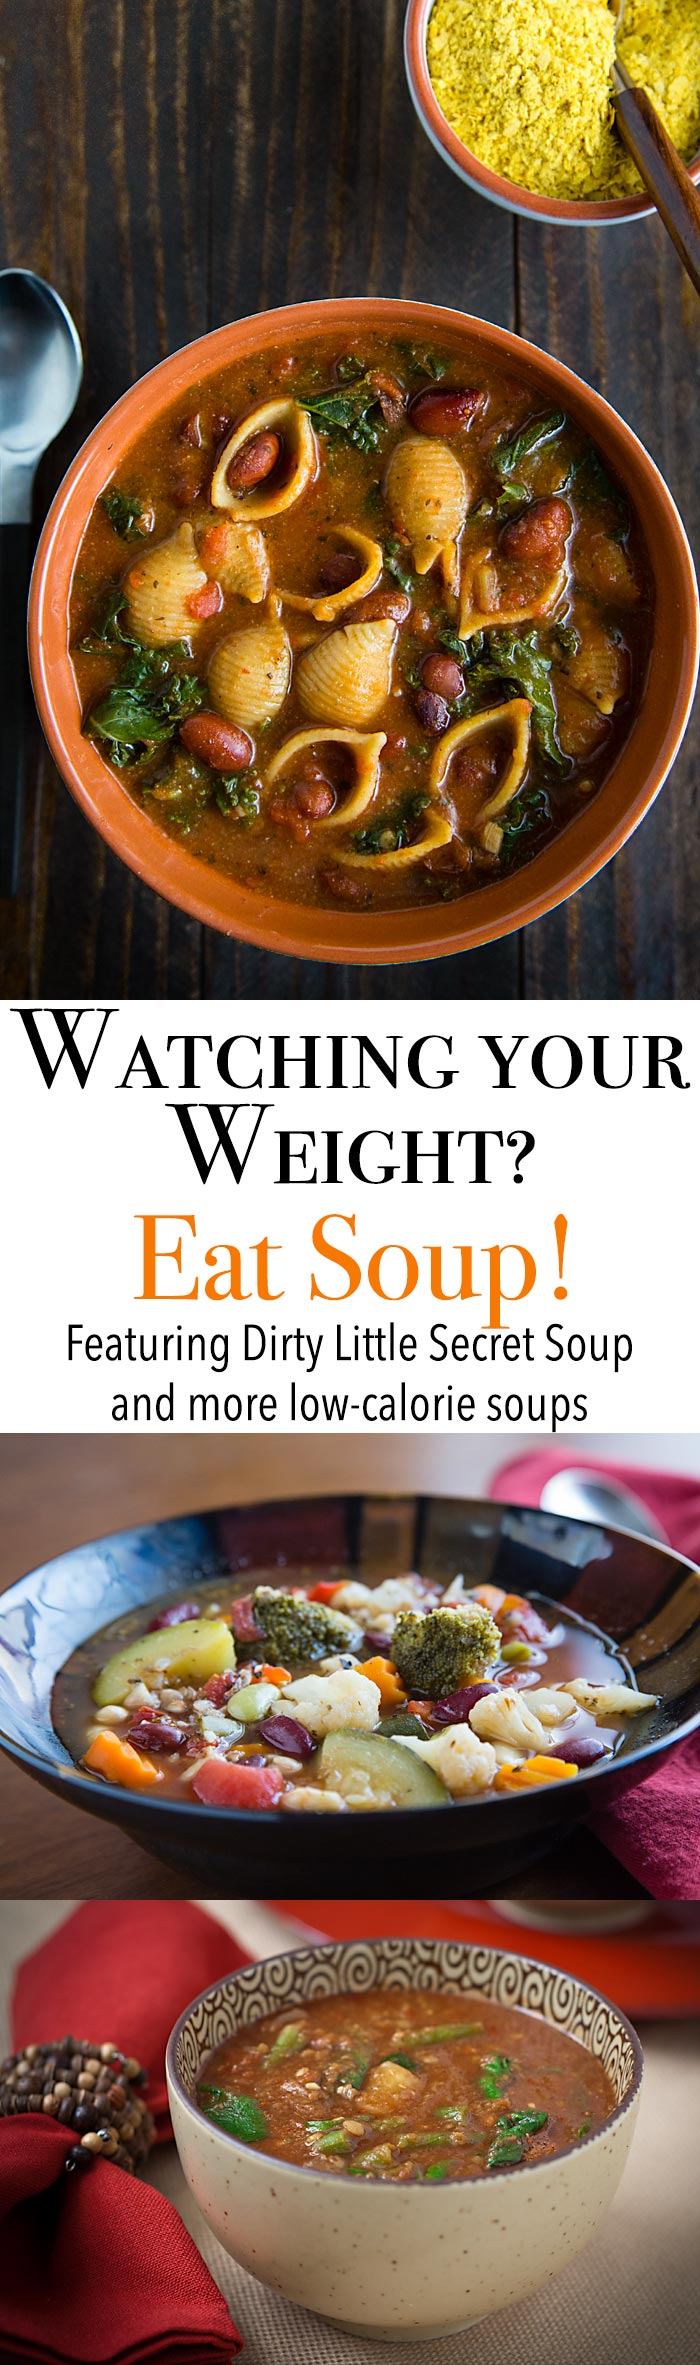 Find out why beginning your meal with soup will help you lose weight and find the recipe for these great low-calorie vegan soups.